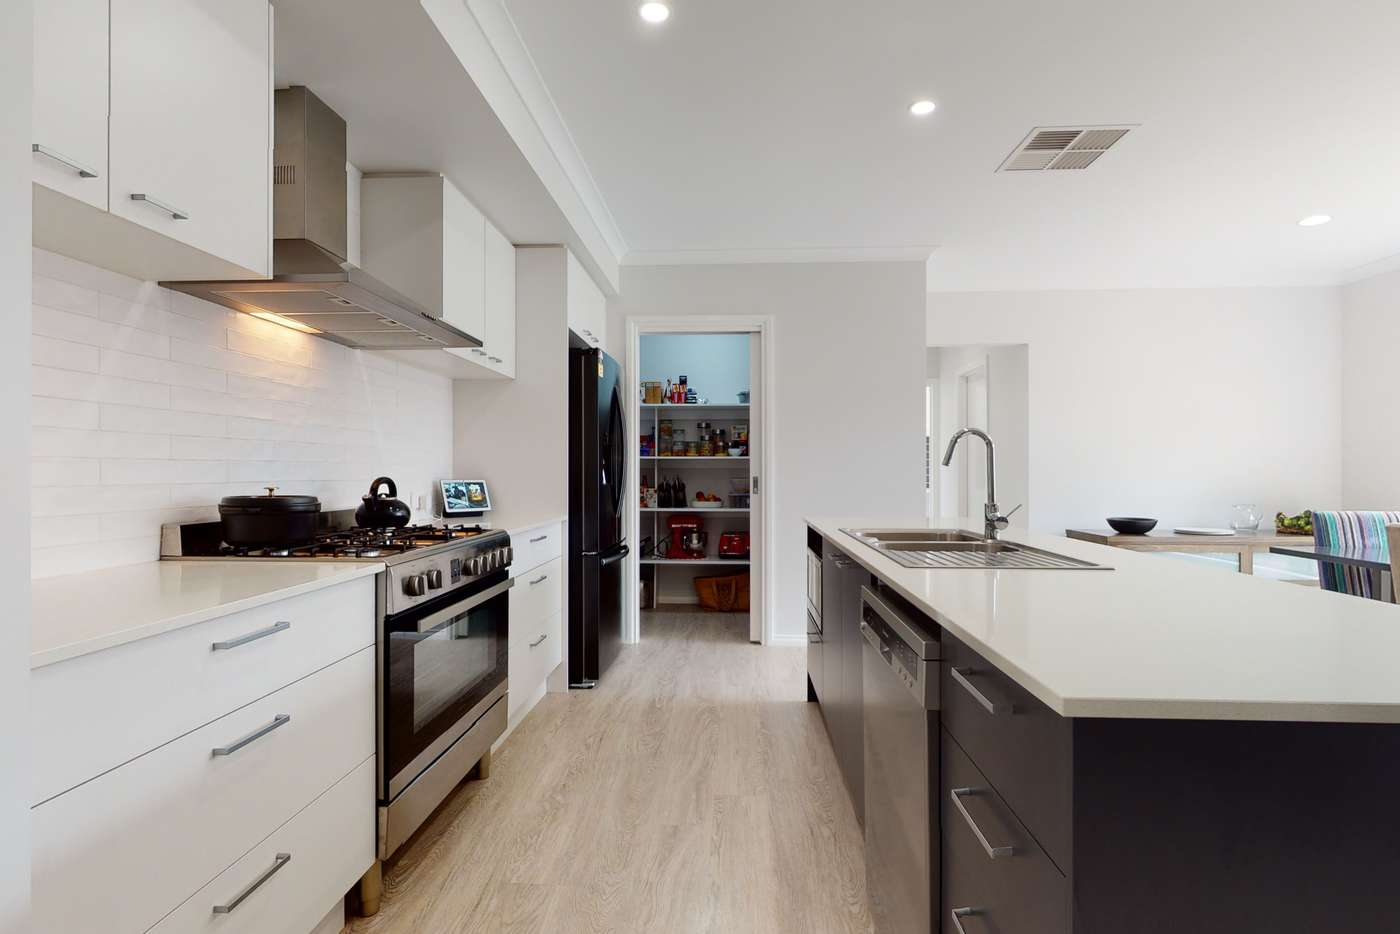 Sixth view of Homely house listing, 16 Pippin Grove, Maiden Gully VIC 3551